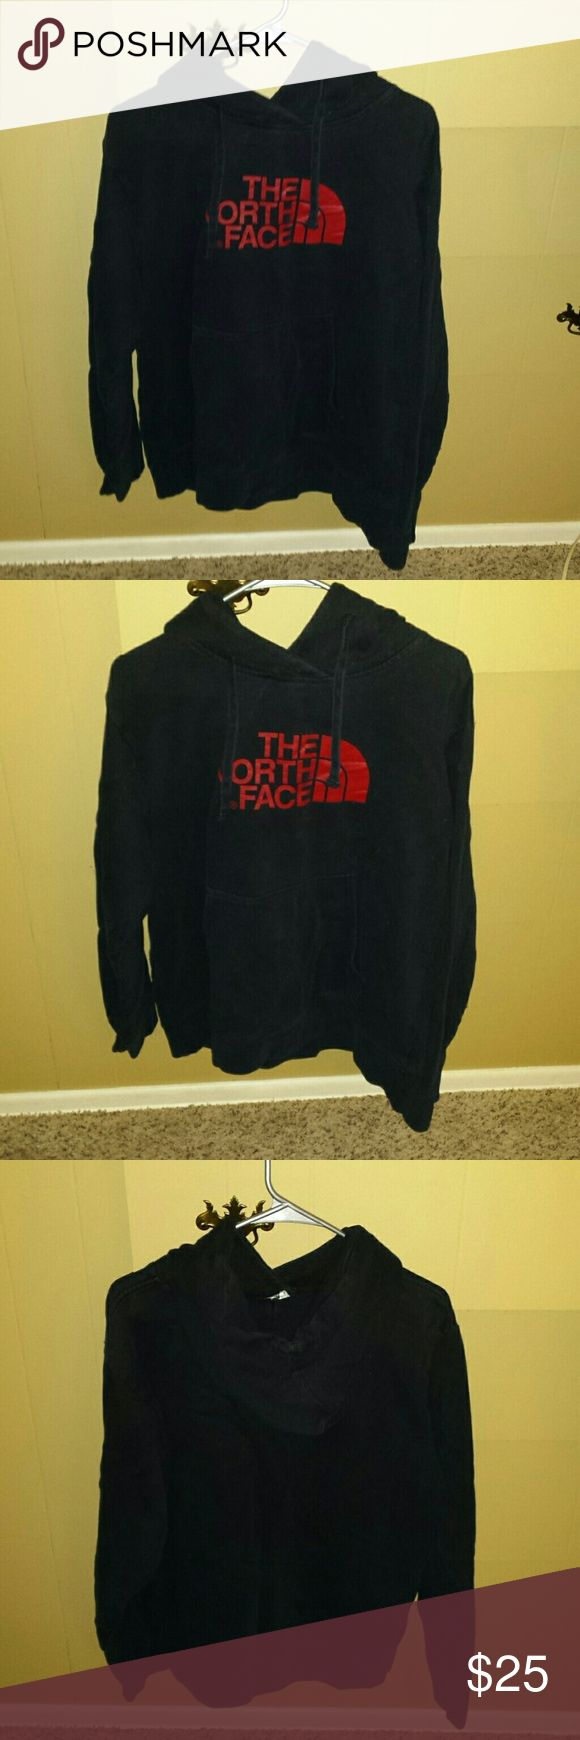 Mens The north face hooded sweat shirt The north face hooded sweat shirt. It is in very good condition. Size large mens The North Face Tops Sweatshirts & Hoodies